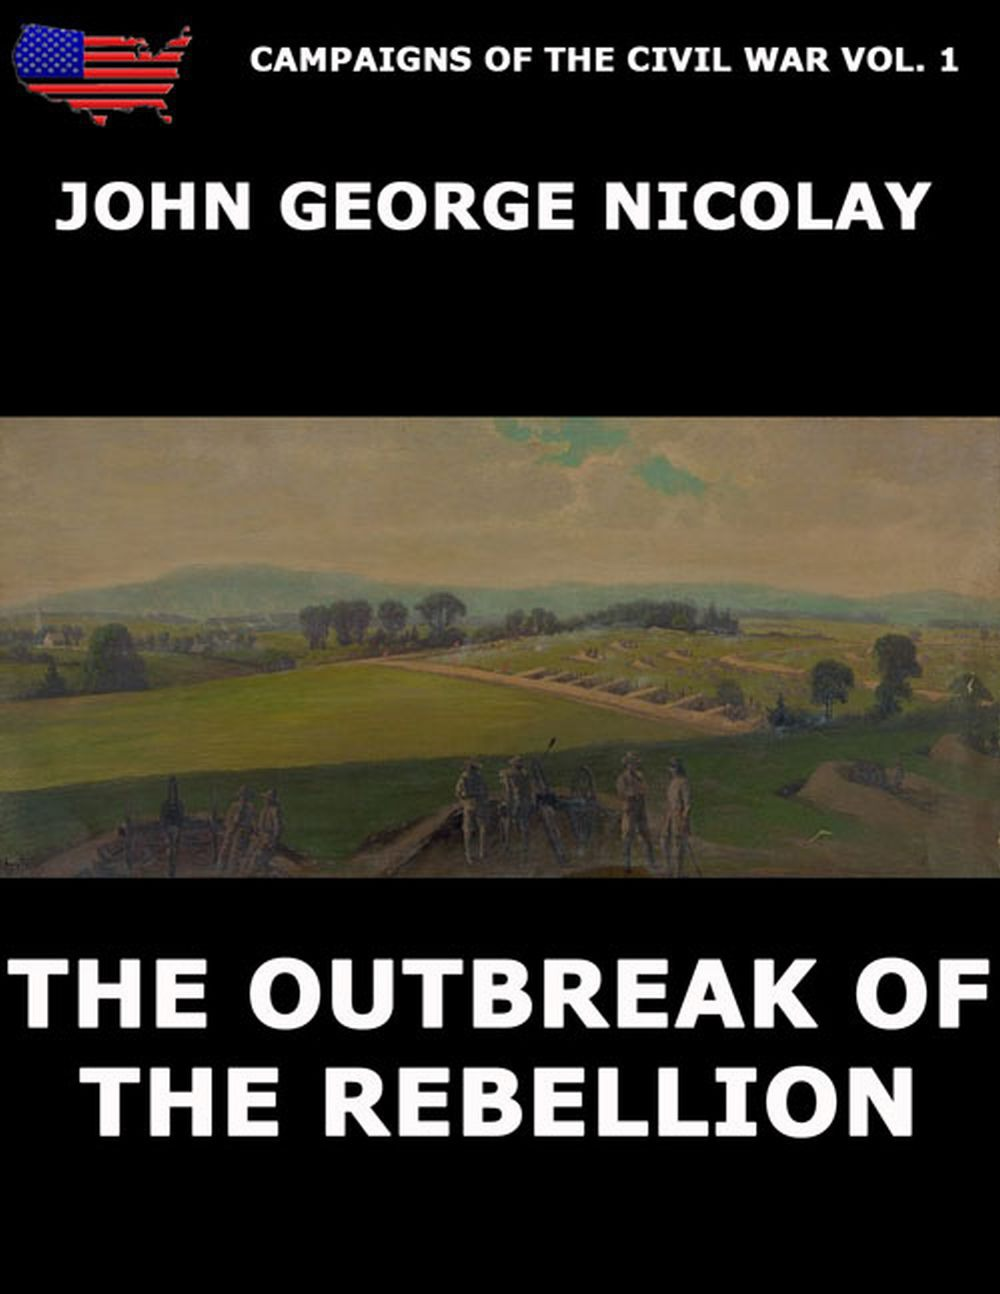 John G. Nicolay Campaigns Of The Civil War Vol. 1 - The Outbreak Of Rebellion jacob dolson cox military reminiscences of the civil war volume 1 april 1861 november 1863